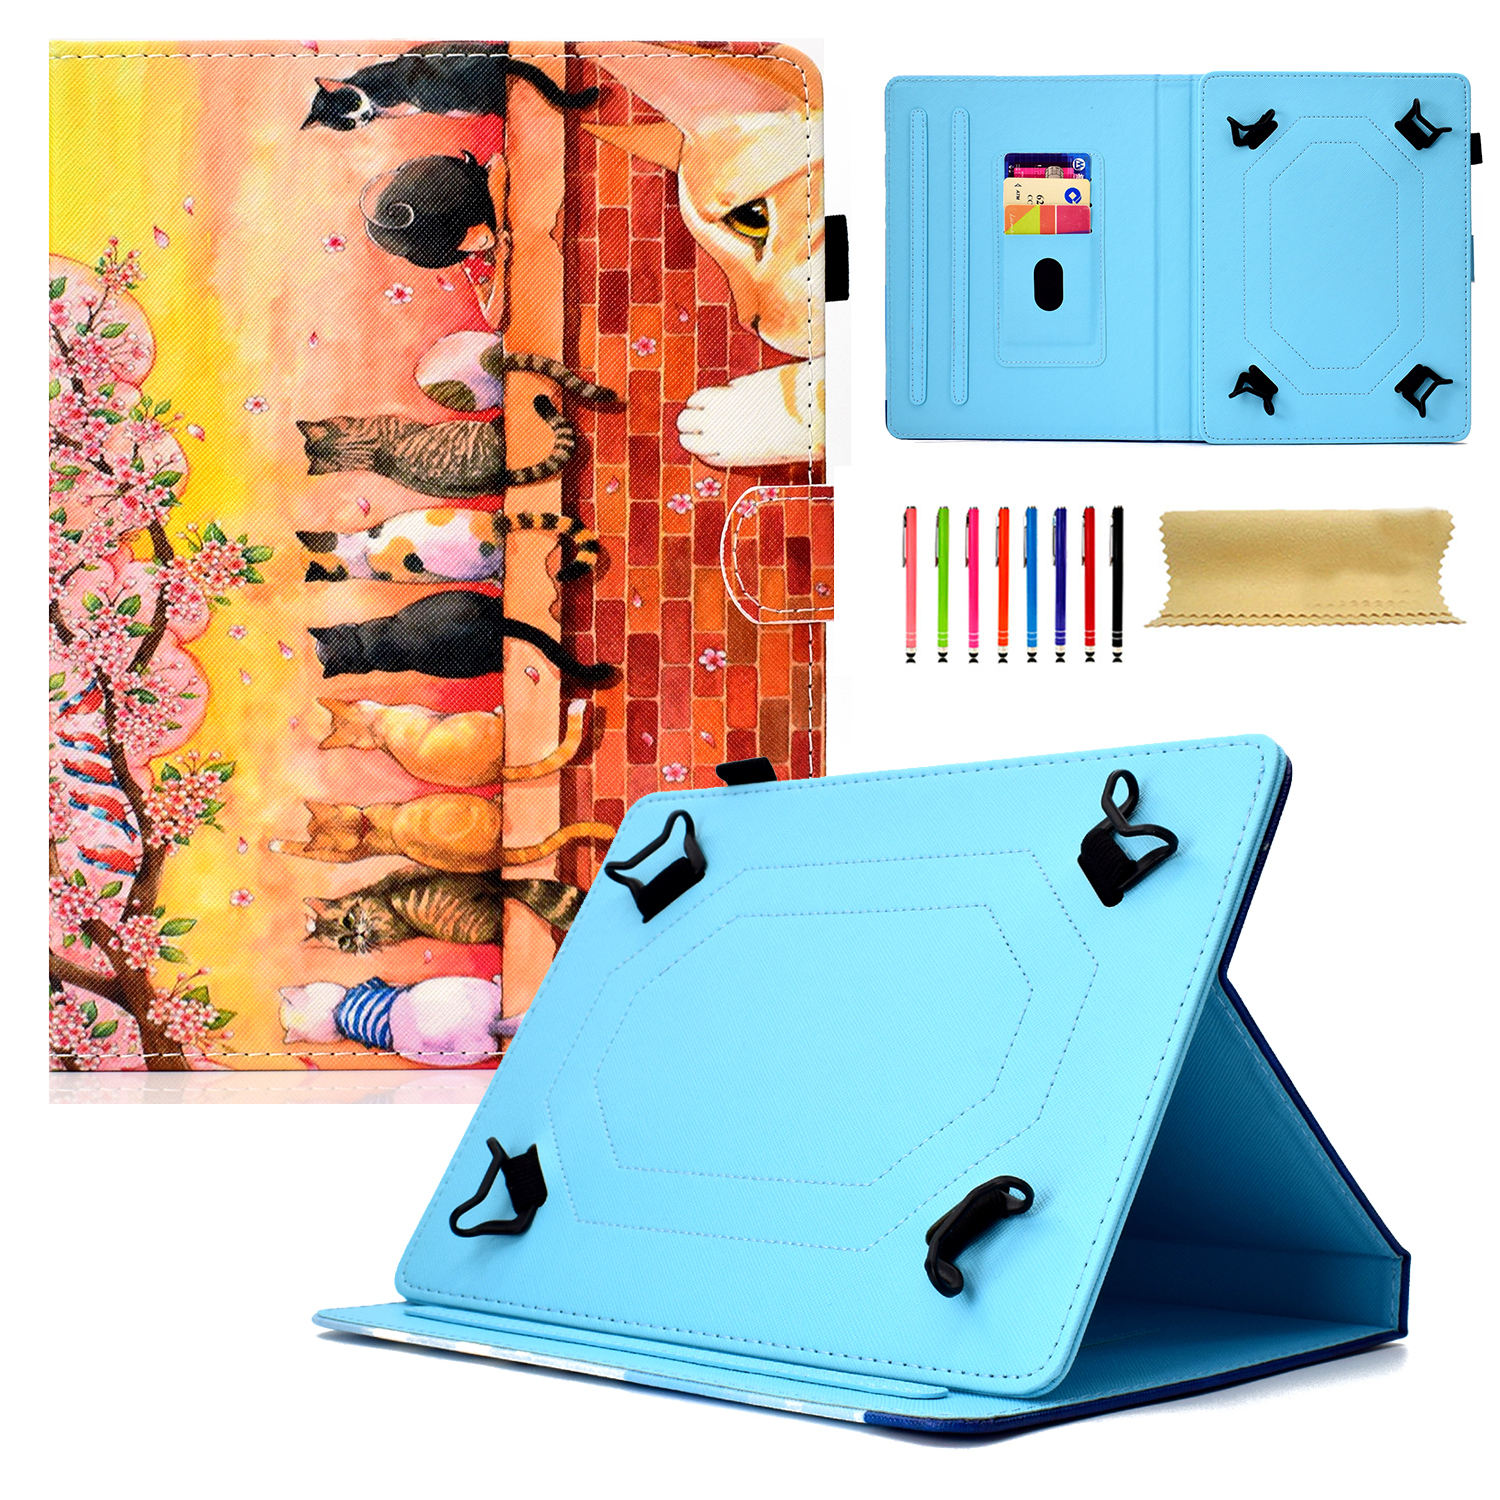 """Goodest Universal 8 Inch Tablet Case, Slim Fit Folio Protective Stand Wallet Cover for 7.5-8.5"""" Tablet 8"""" Touchscreen/iPad Mini/Galaxy Tab A/Fire HD 8/RCA/Chrome Nextbook iView, Colorful Cats"""